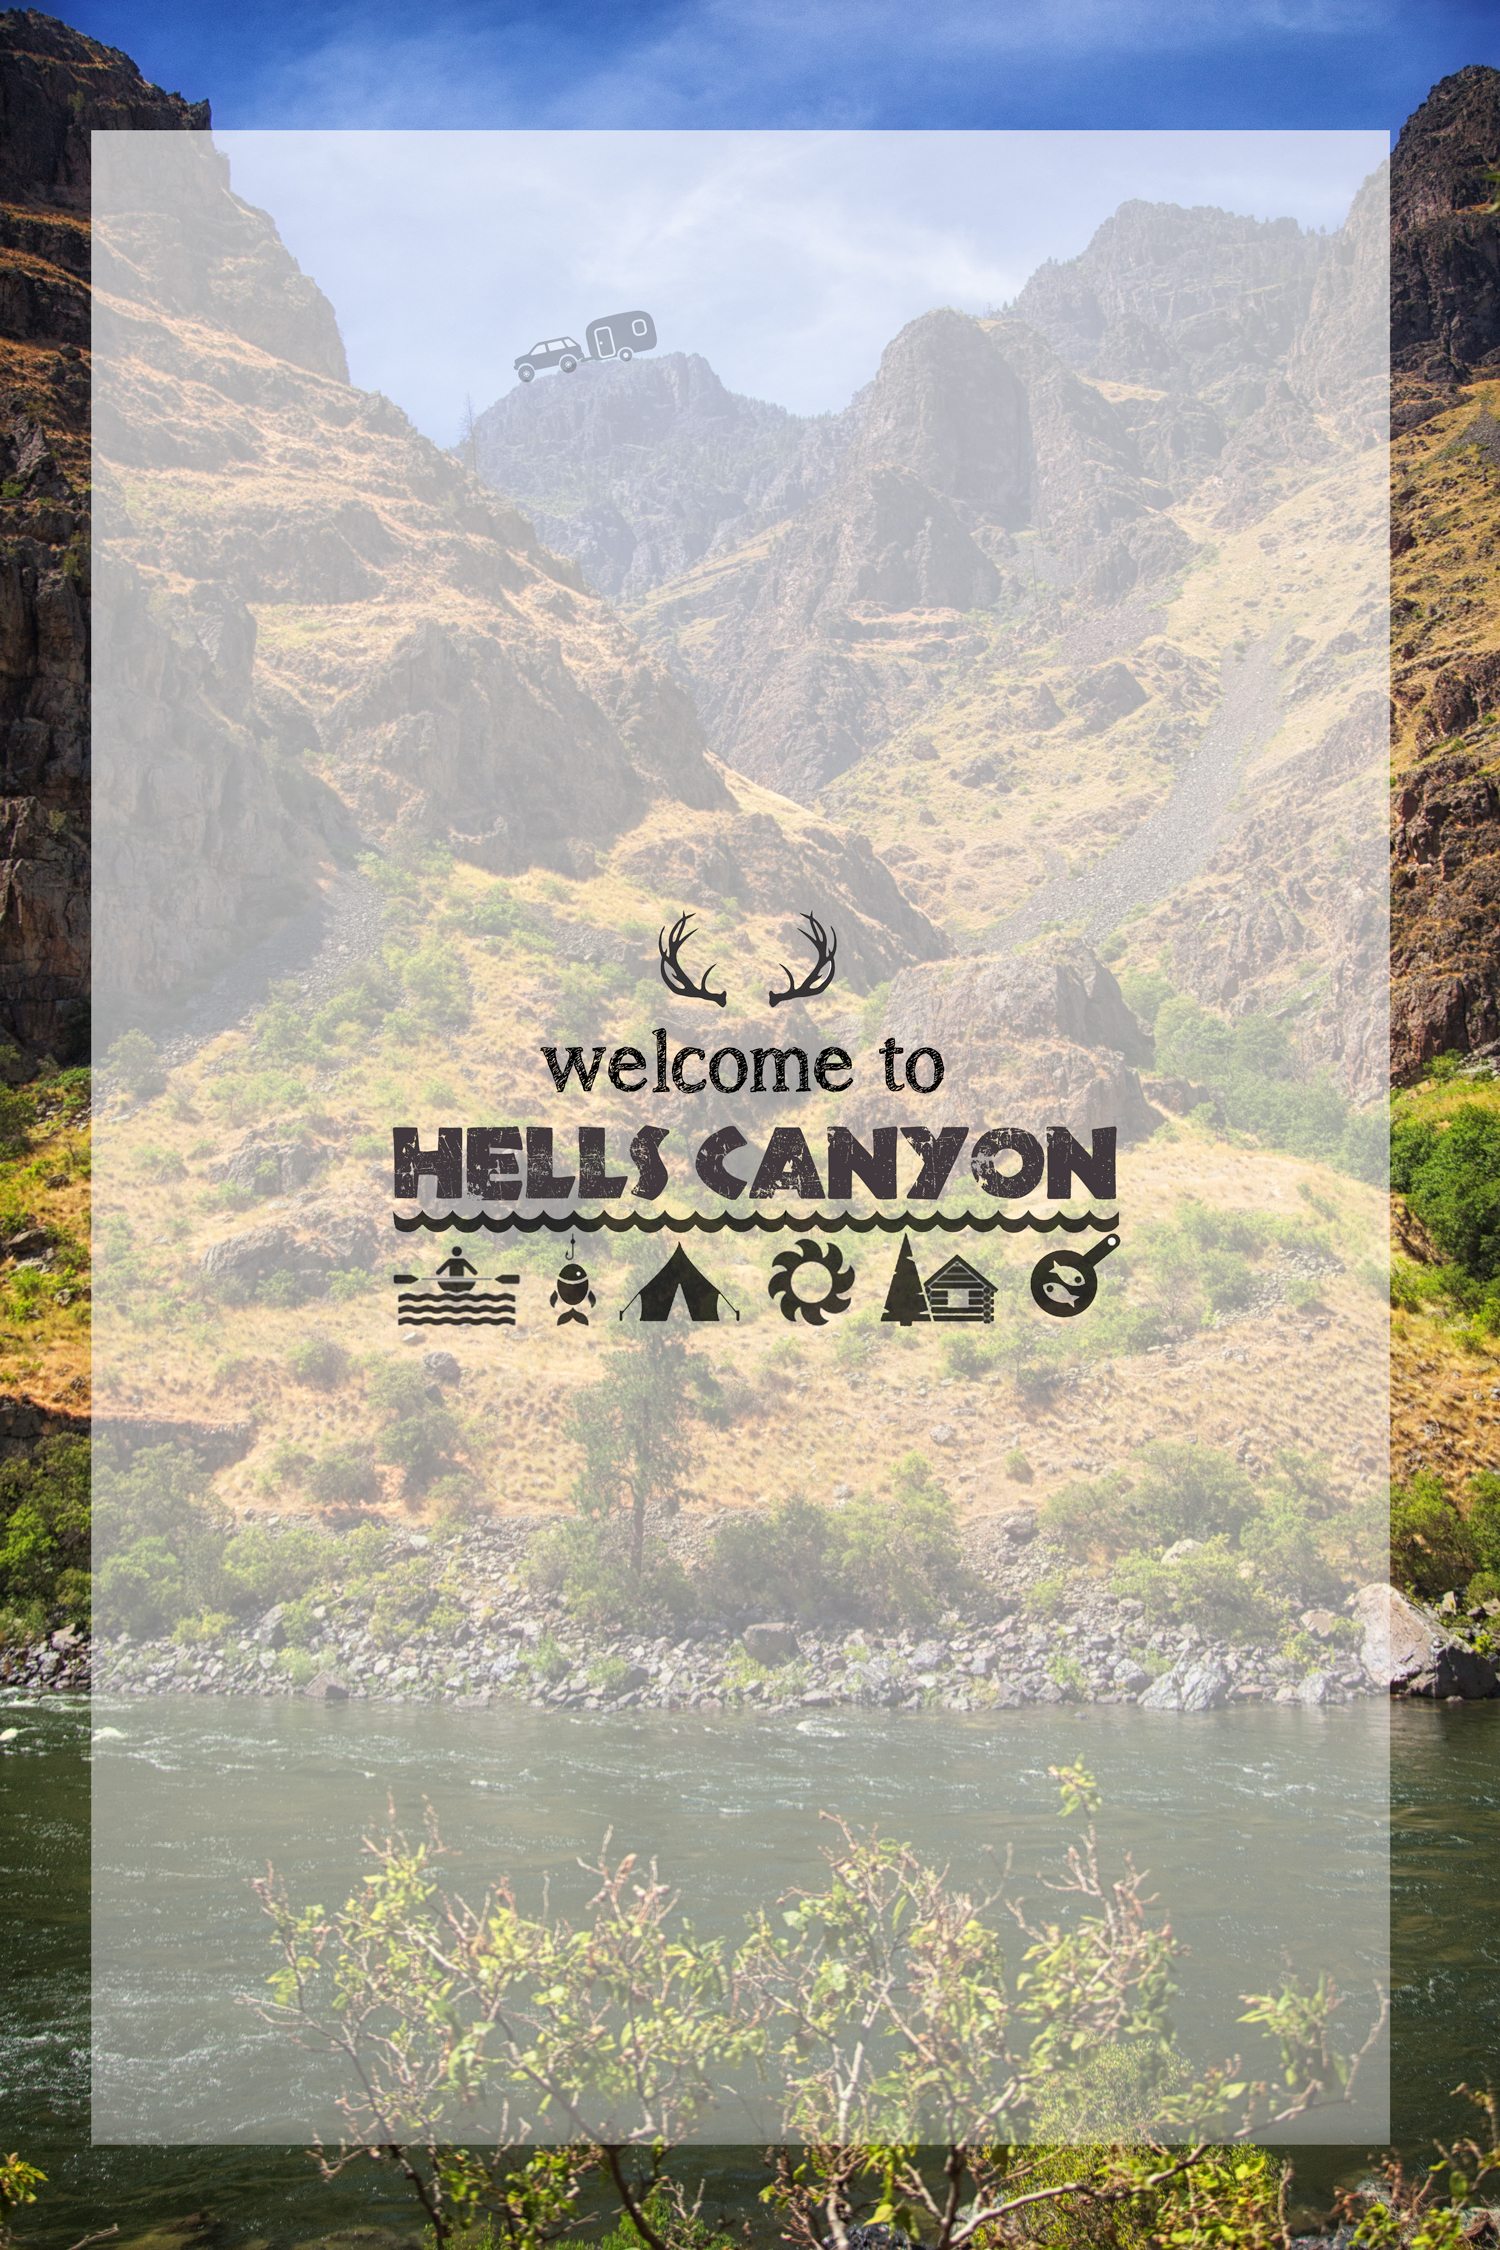 Rafting in Hells Canyon